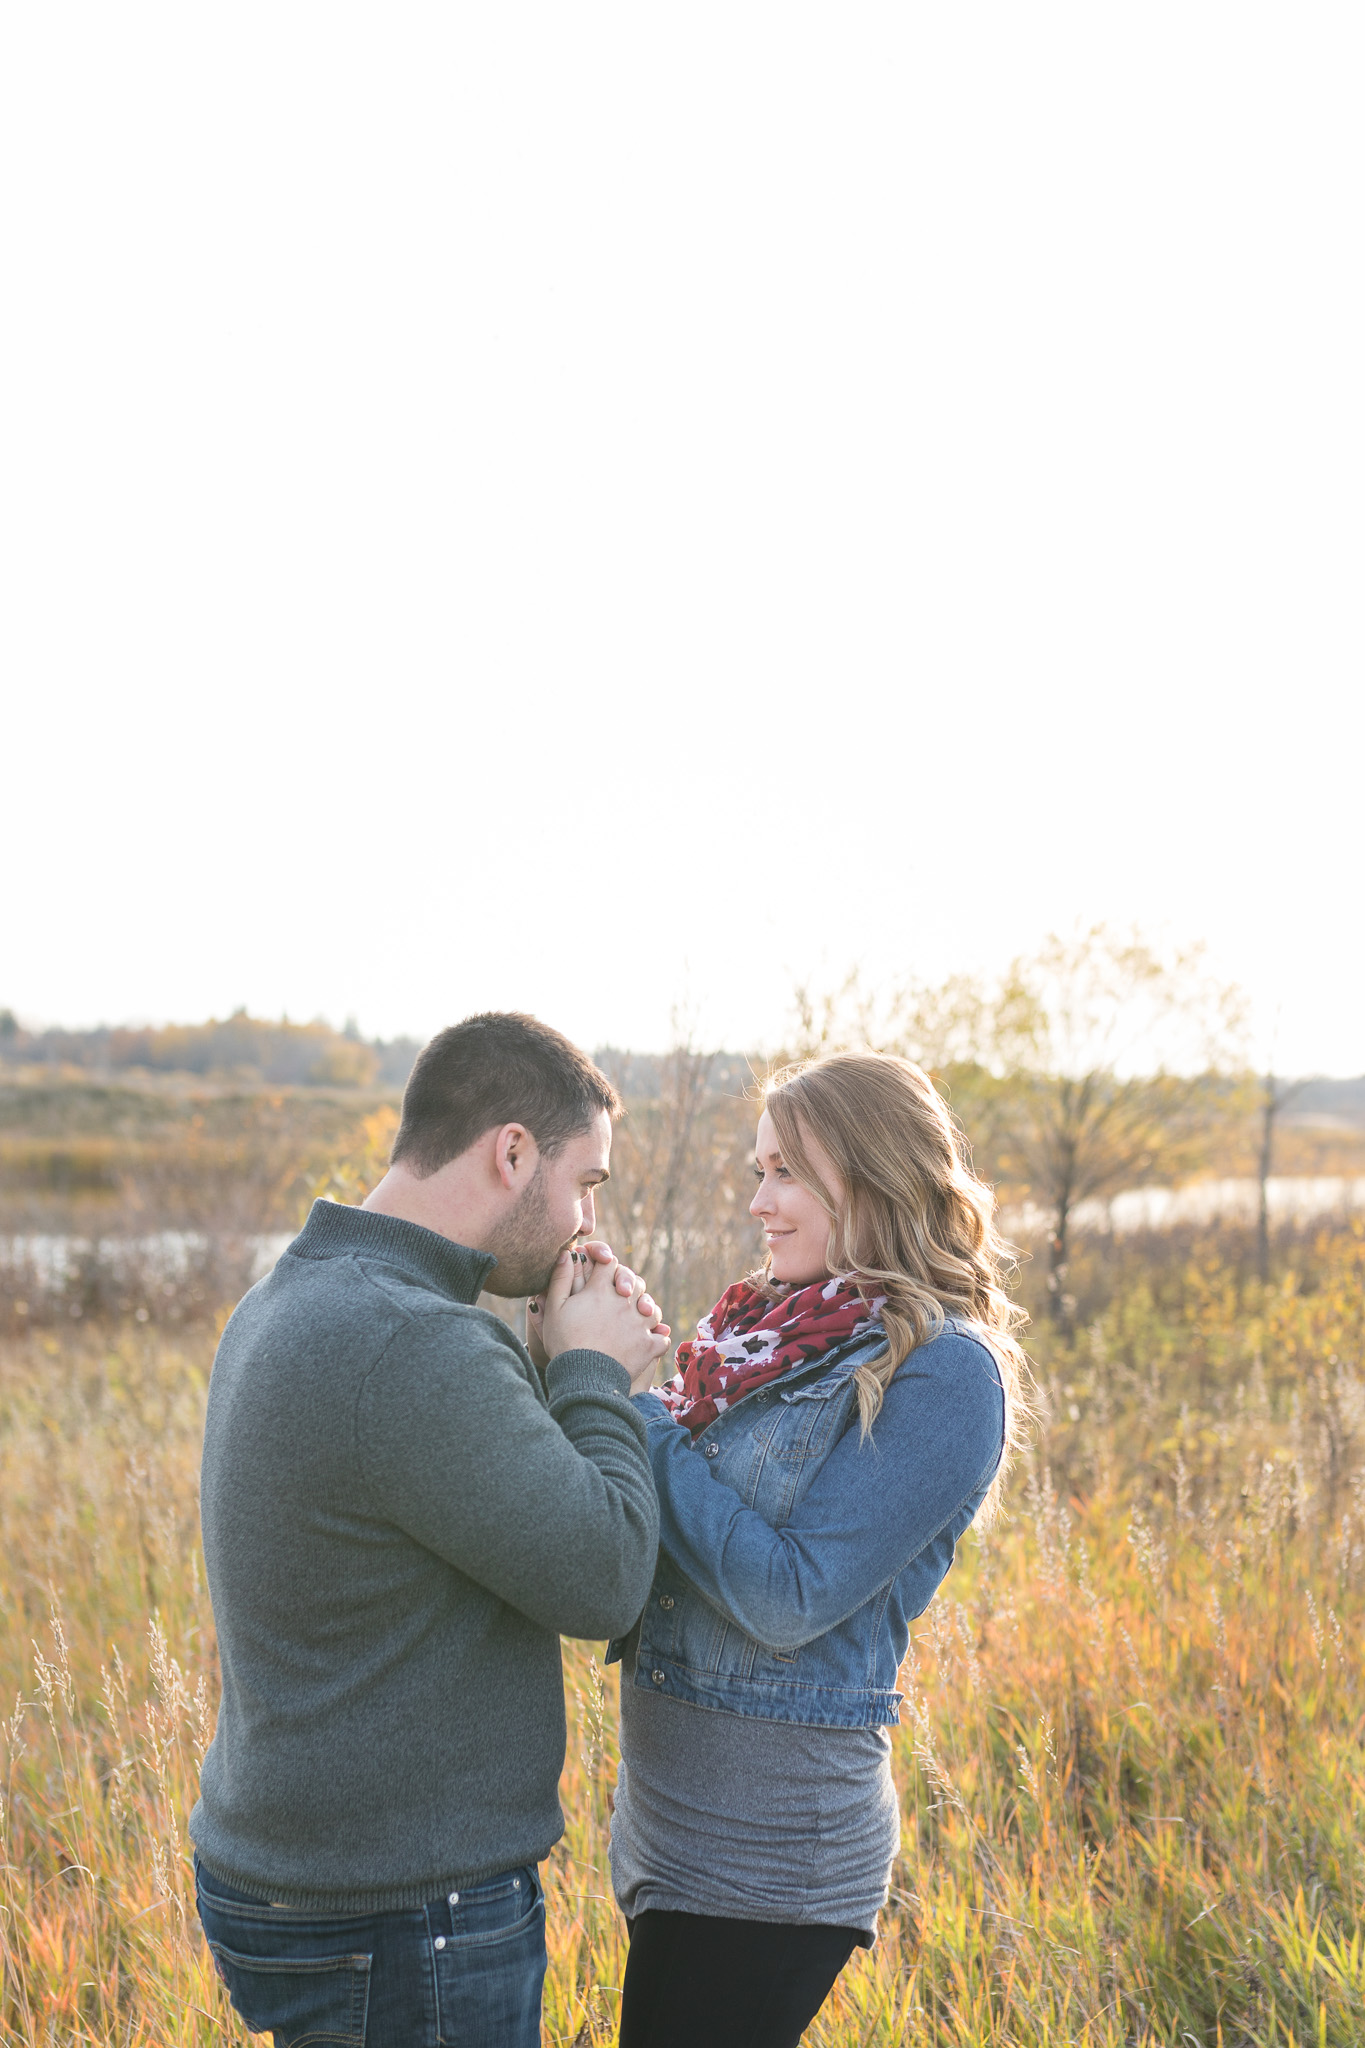 winnipeg-engagement-birdshill-park-8.jpg